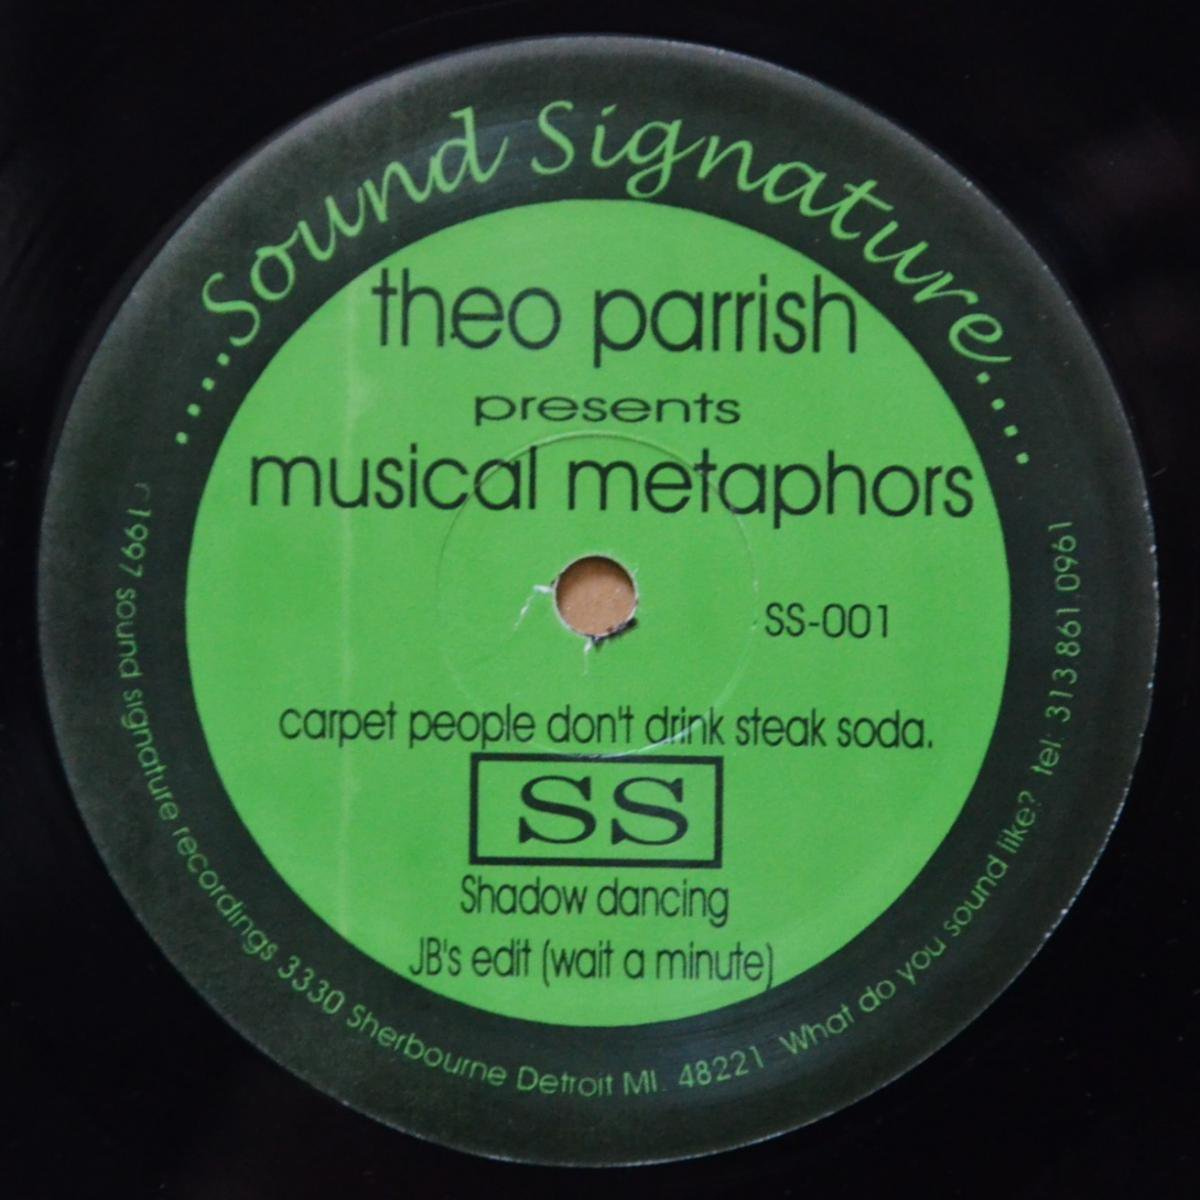 THEO PARRISH ‎/ MUSICAL METAPHORS / SHADOW DANCING / JB'S EDIT (WAIT A MINUTE) (12